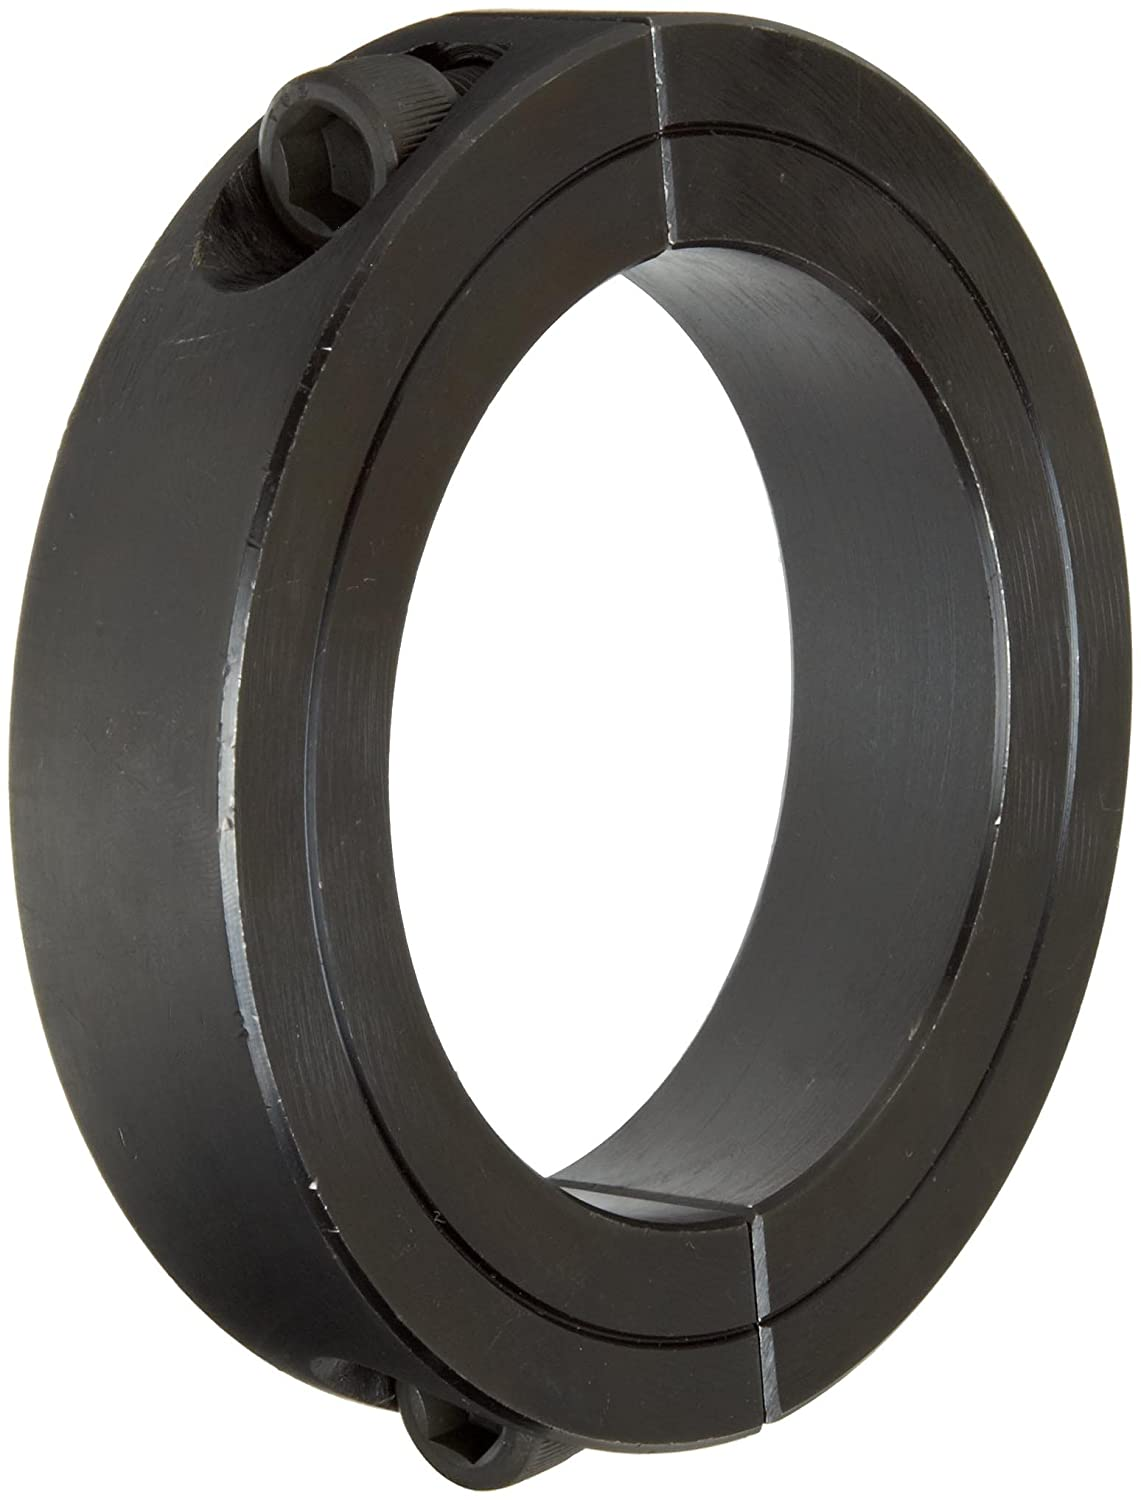 Climax Metal 2C-118 Steel Two-Piece Clamping Collar, Black Oxide Plating, 1-3/16' Bore Size, 2-1/16' OD, With 1/4-28 x 3/4 Set Screw 1-3/16 Bore Size 2-1/16 OD Climax Metal Products